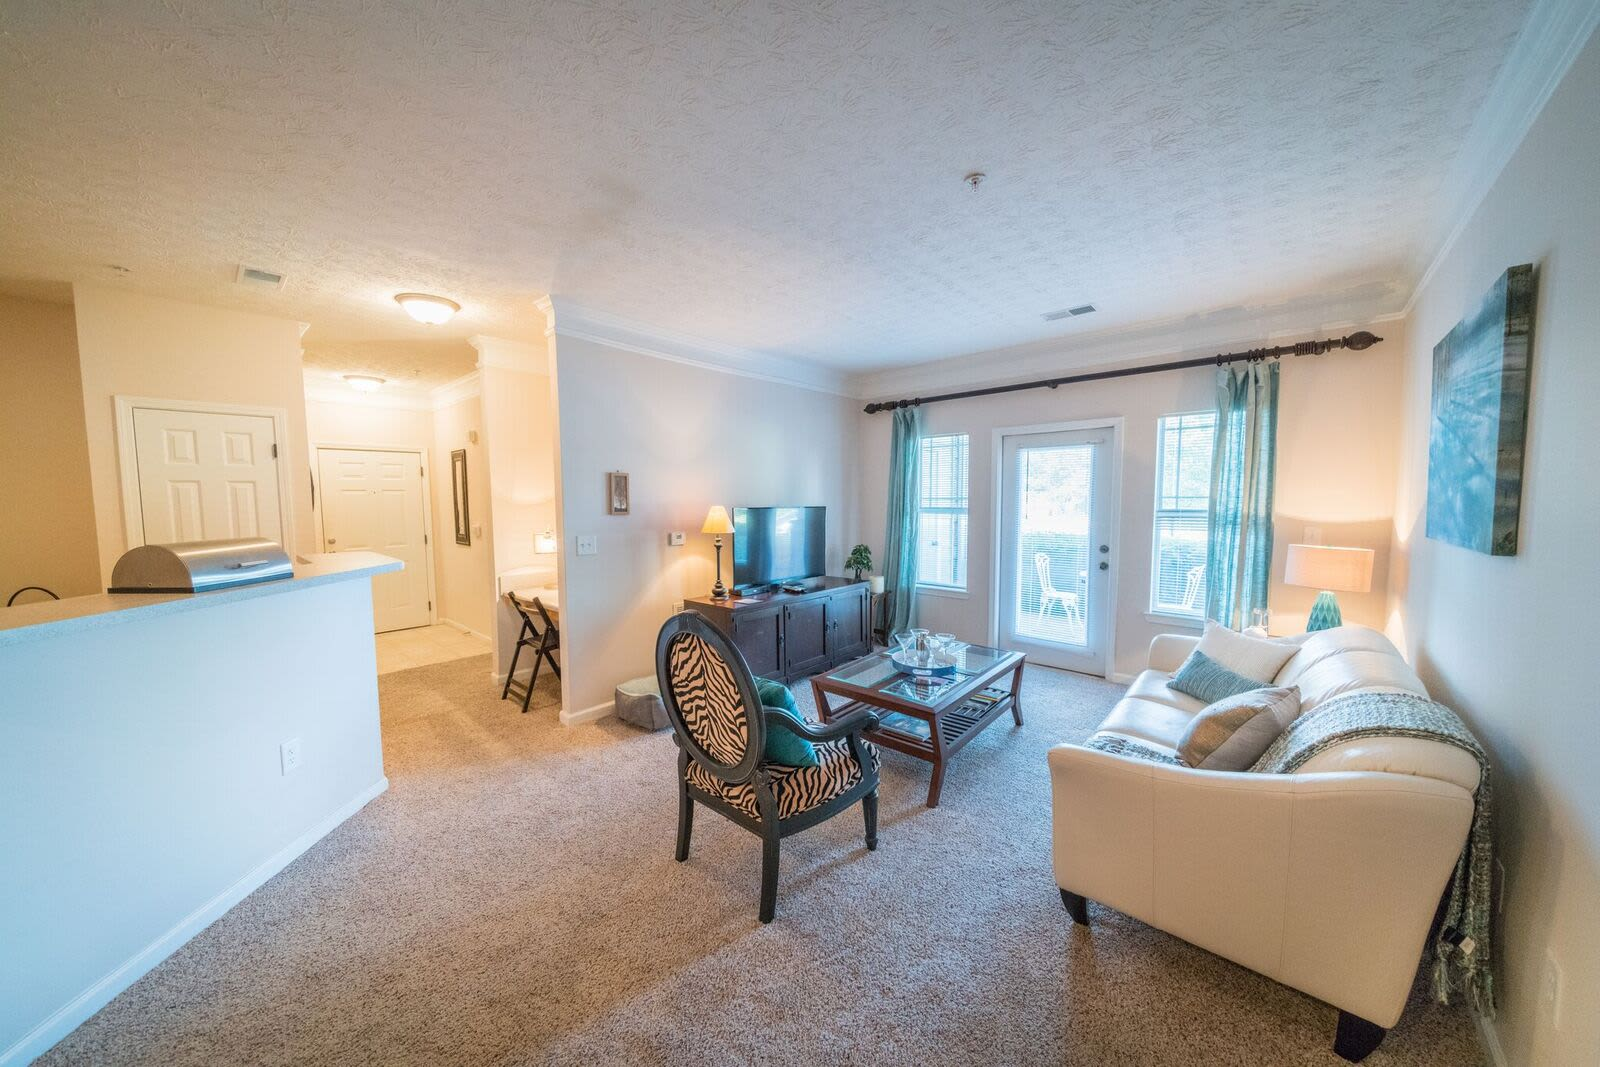 Enjoy apartments with a spacious living room at Haddon Place